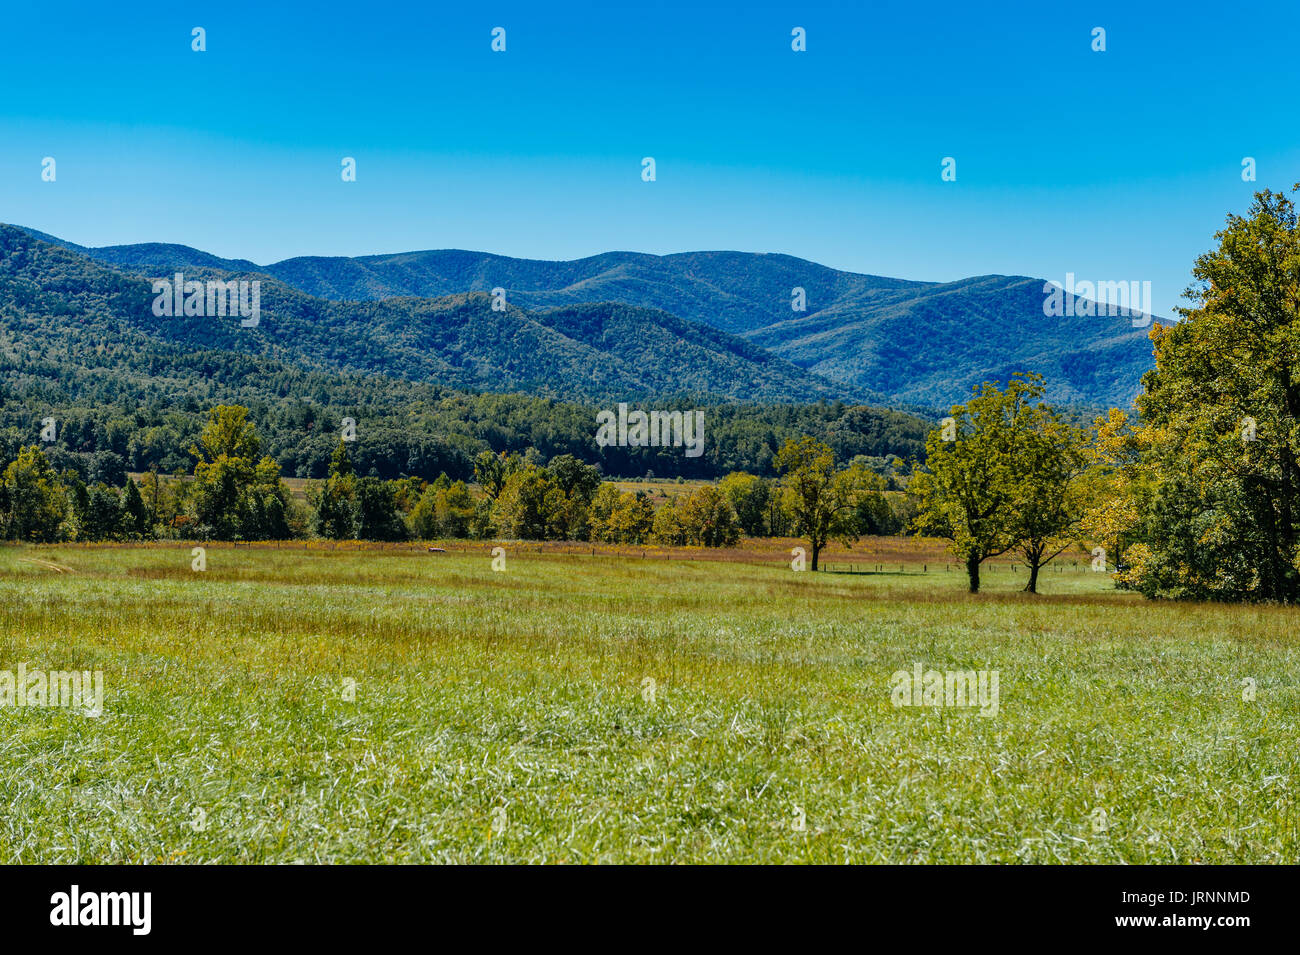 Great Smokey Mountains National Park as seen from Cades Cove, a narrow valley near Townsend, Tennessee, USA. Stock Photo